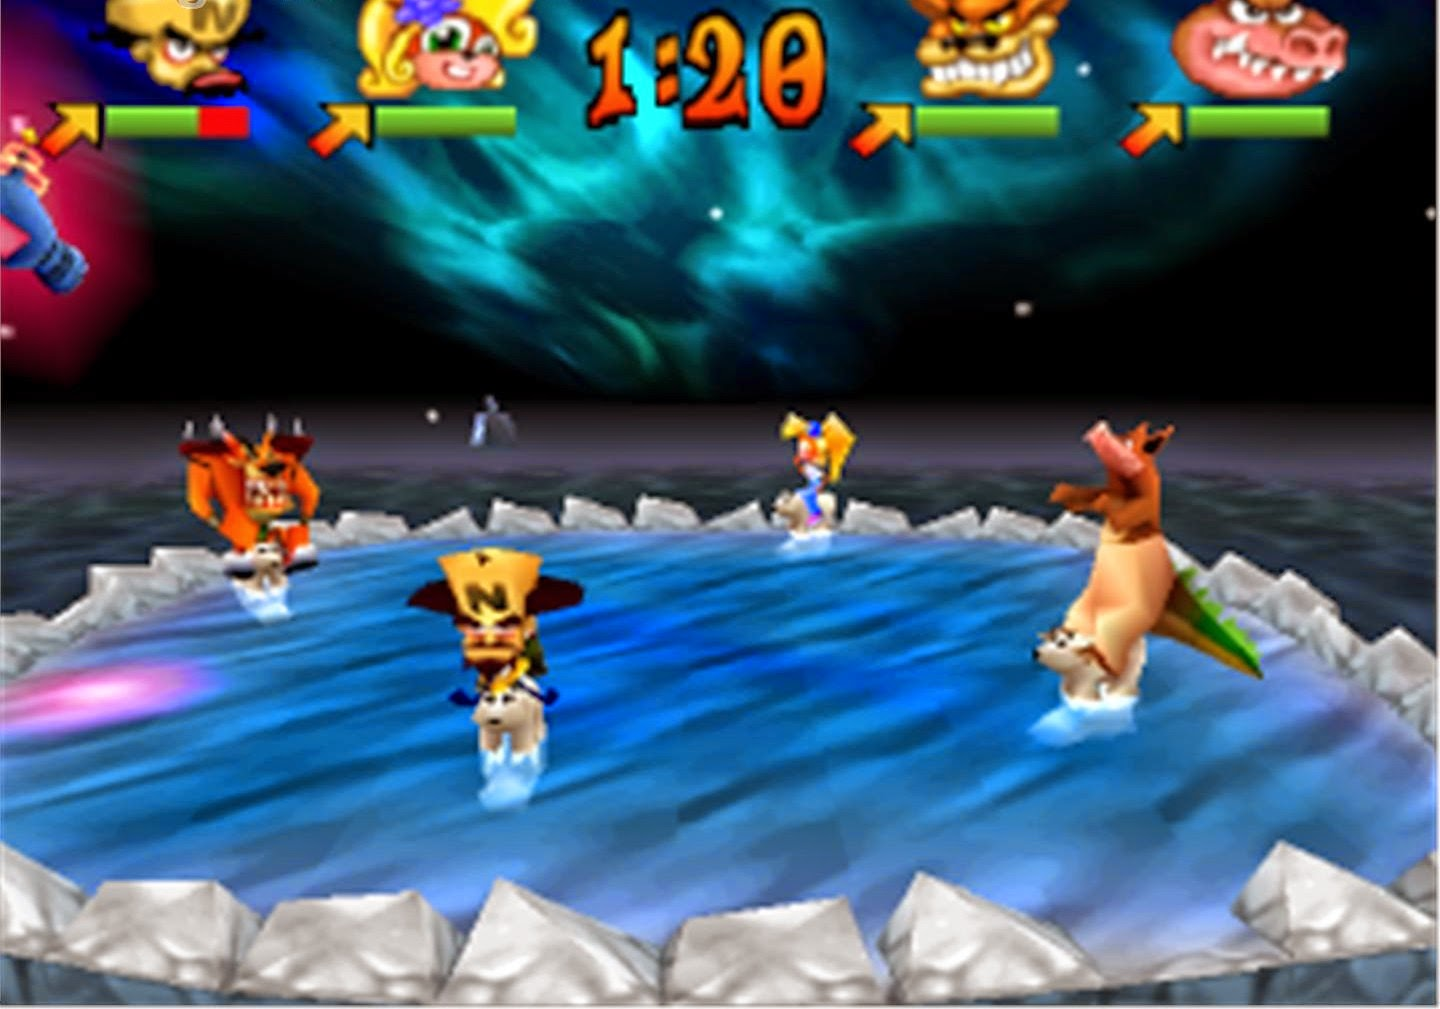 A Game For Free : Crash bash game free download full version for pc